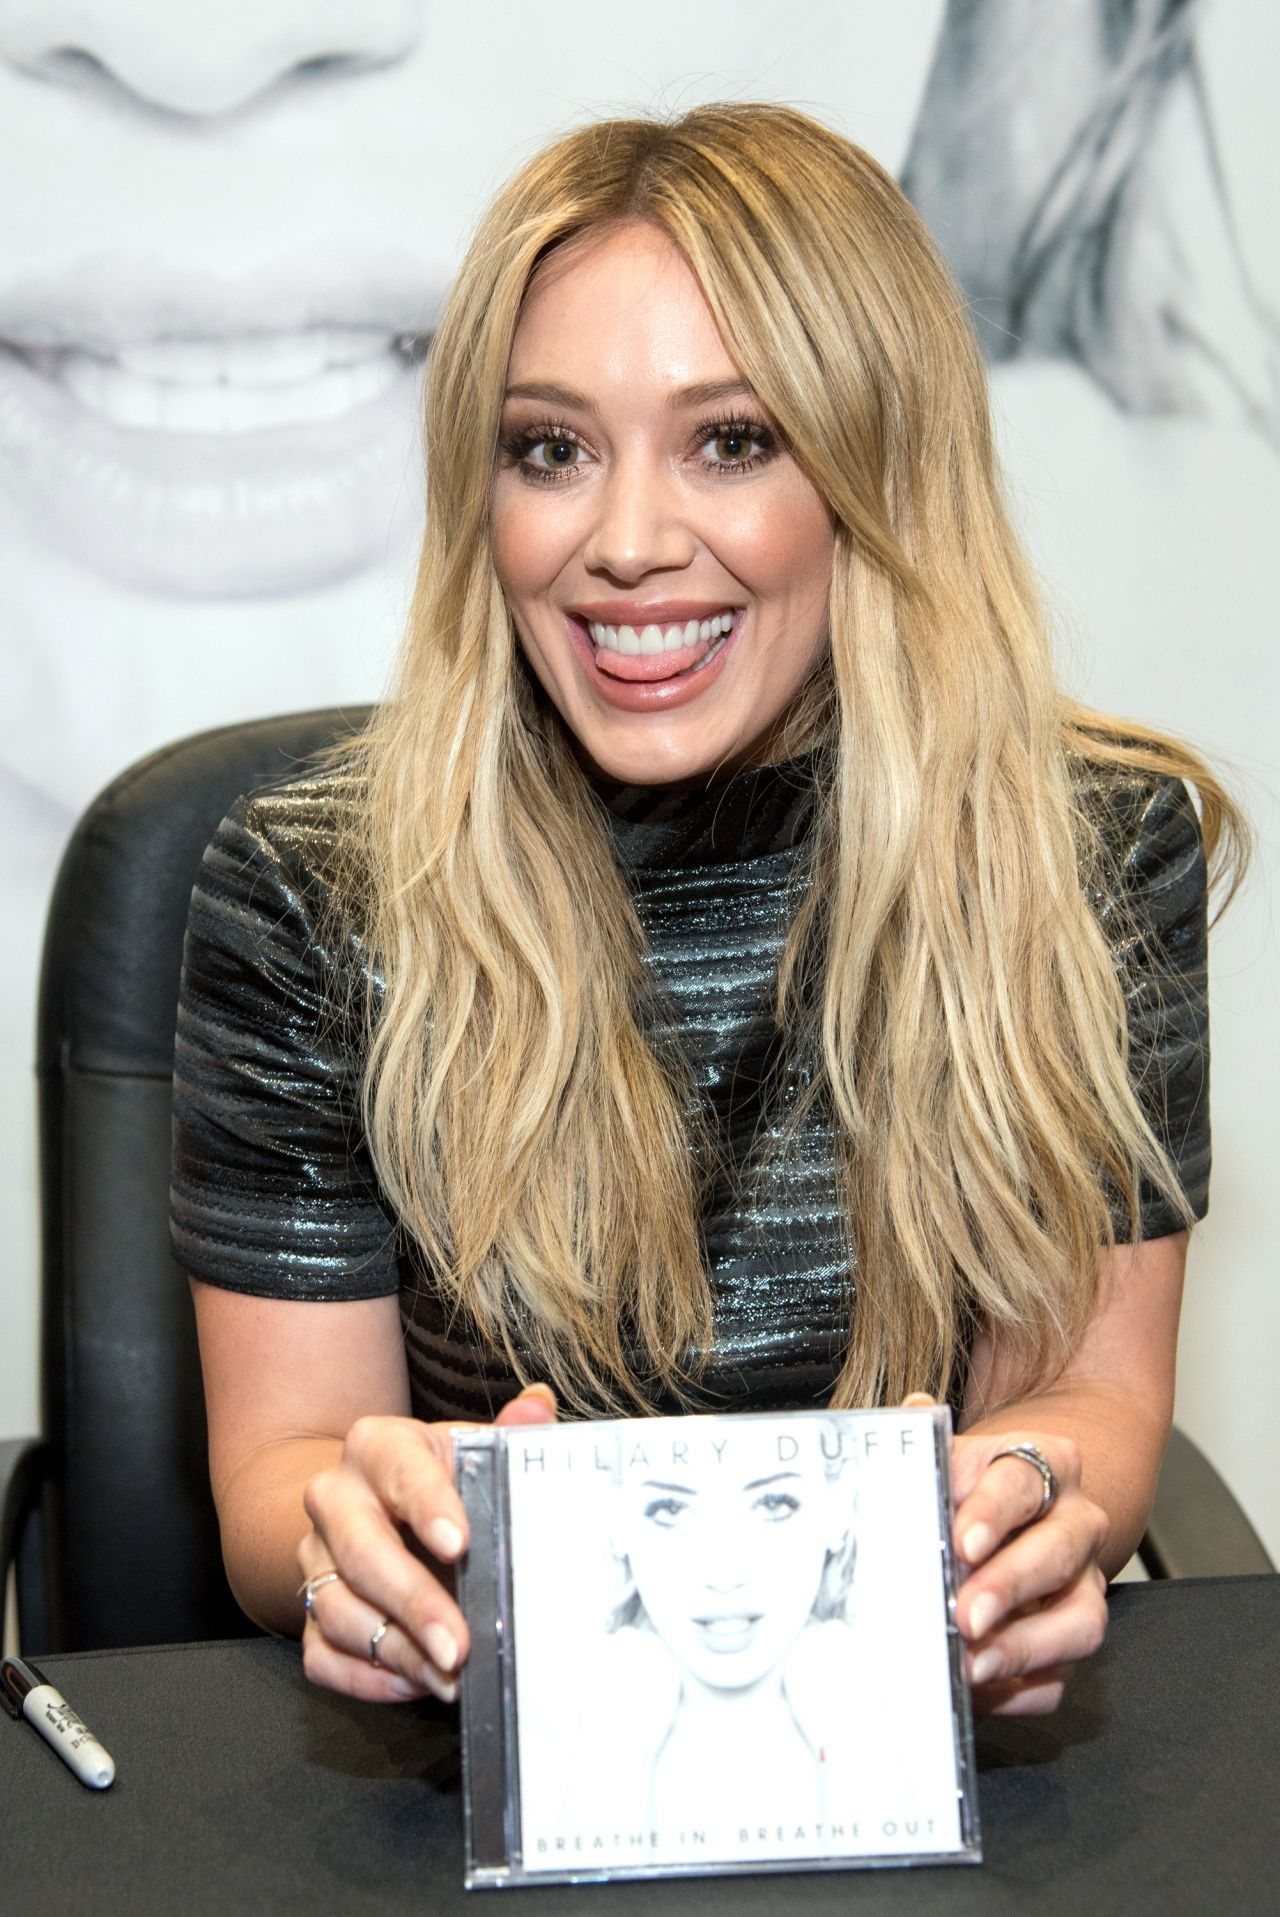 Hilary Duff - Breathe In, Breathe Out CD Signing Event in ... Hilary Duff